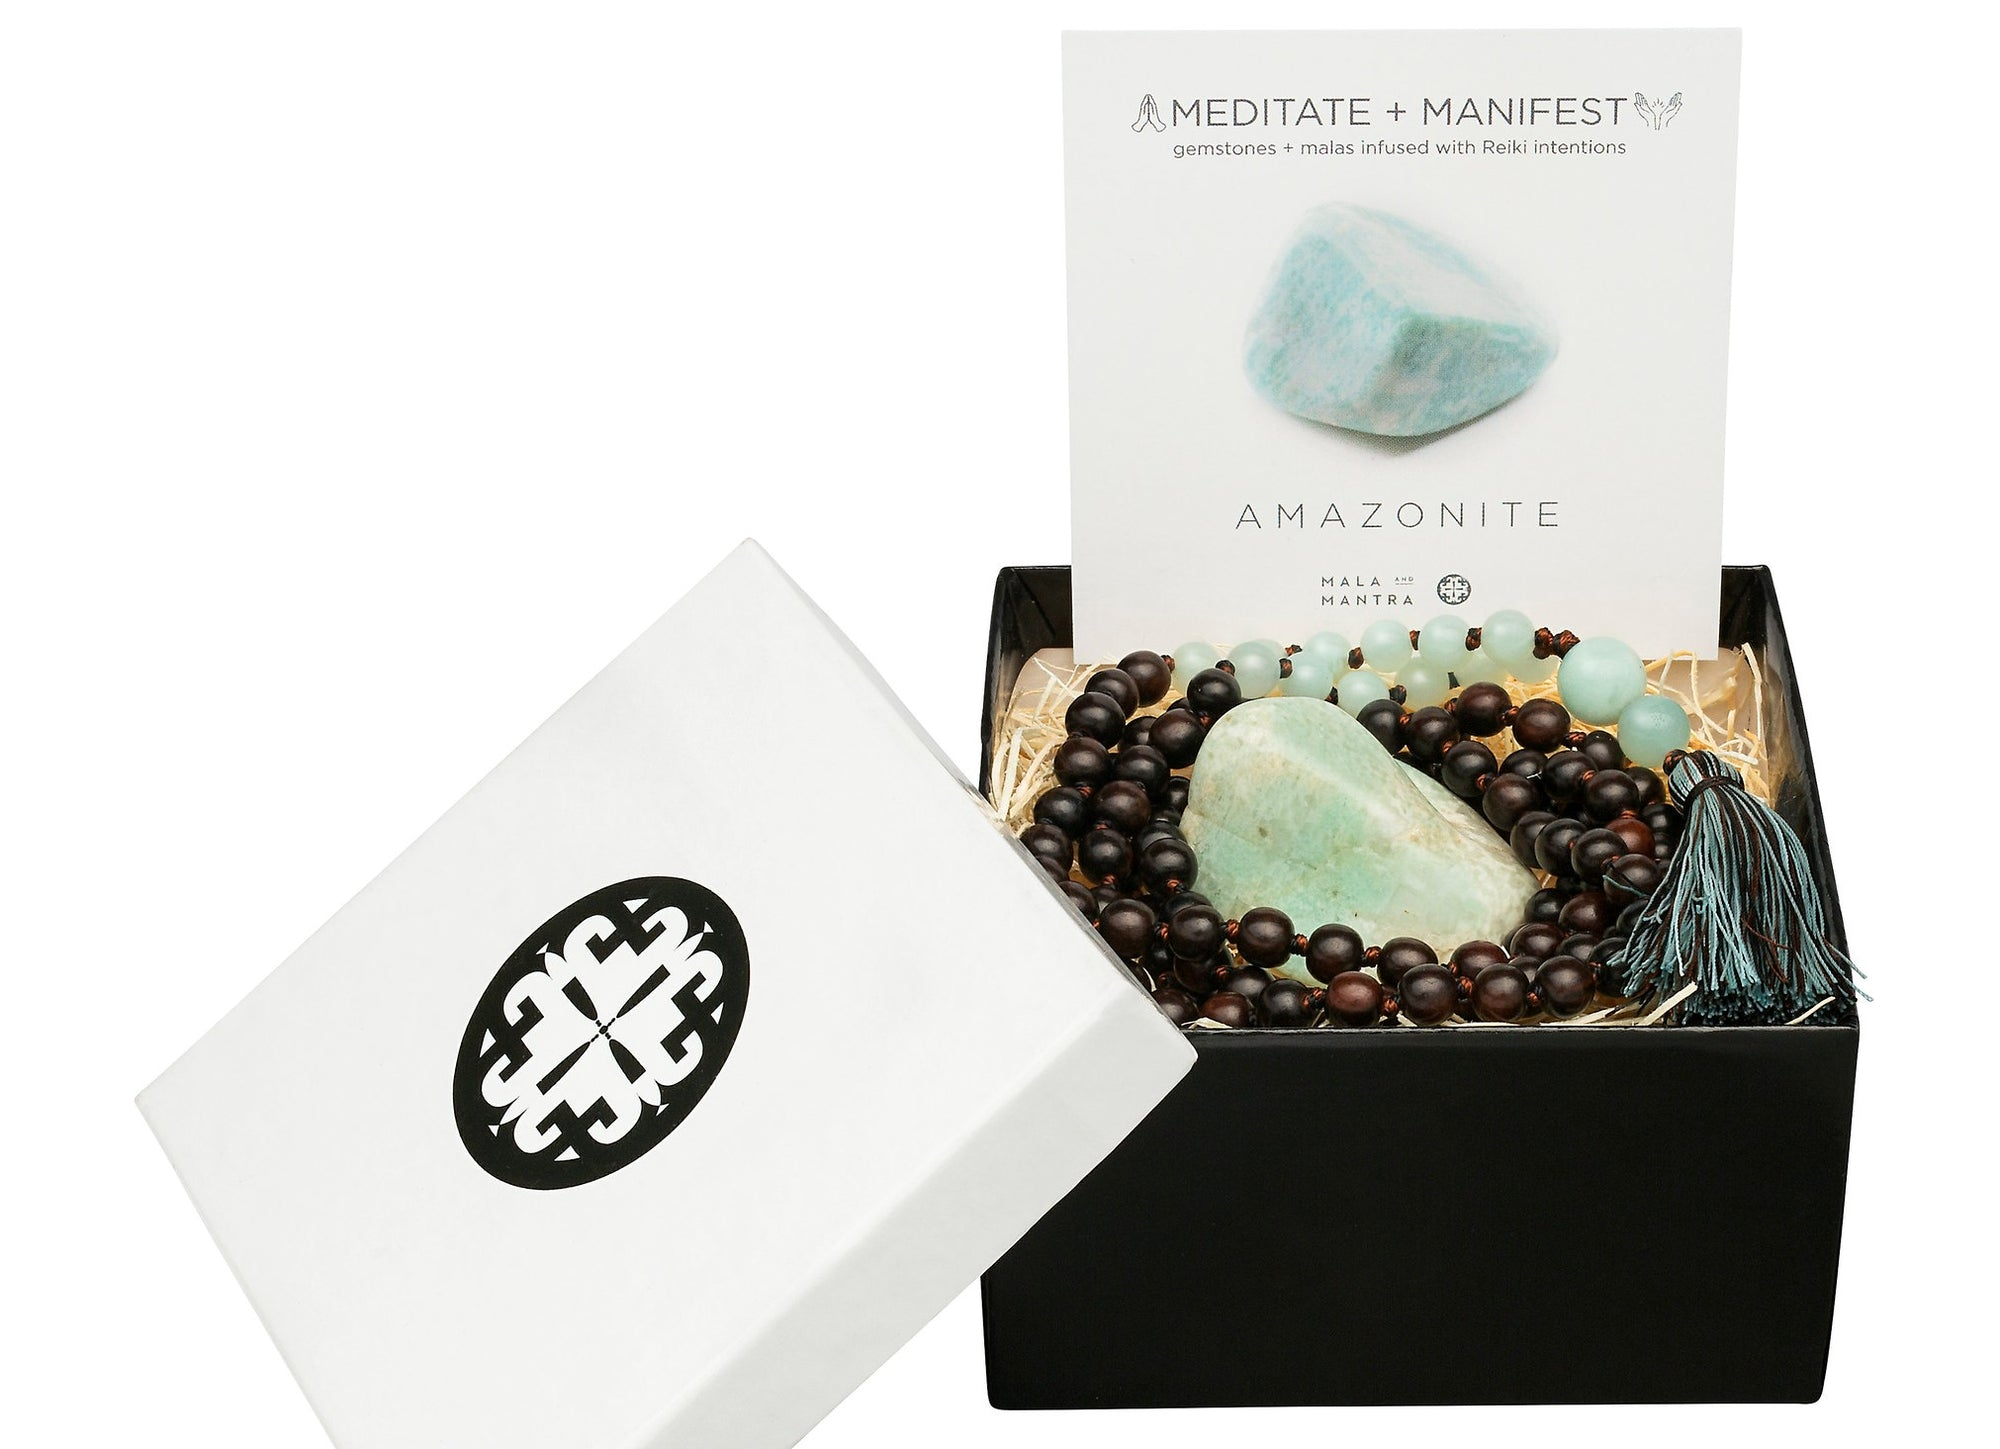 GEMSTONE GIFT BOXES + SETS